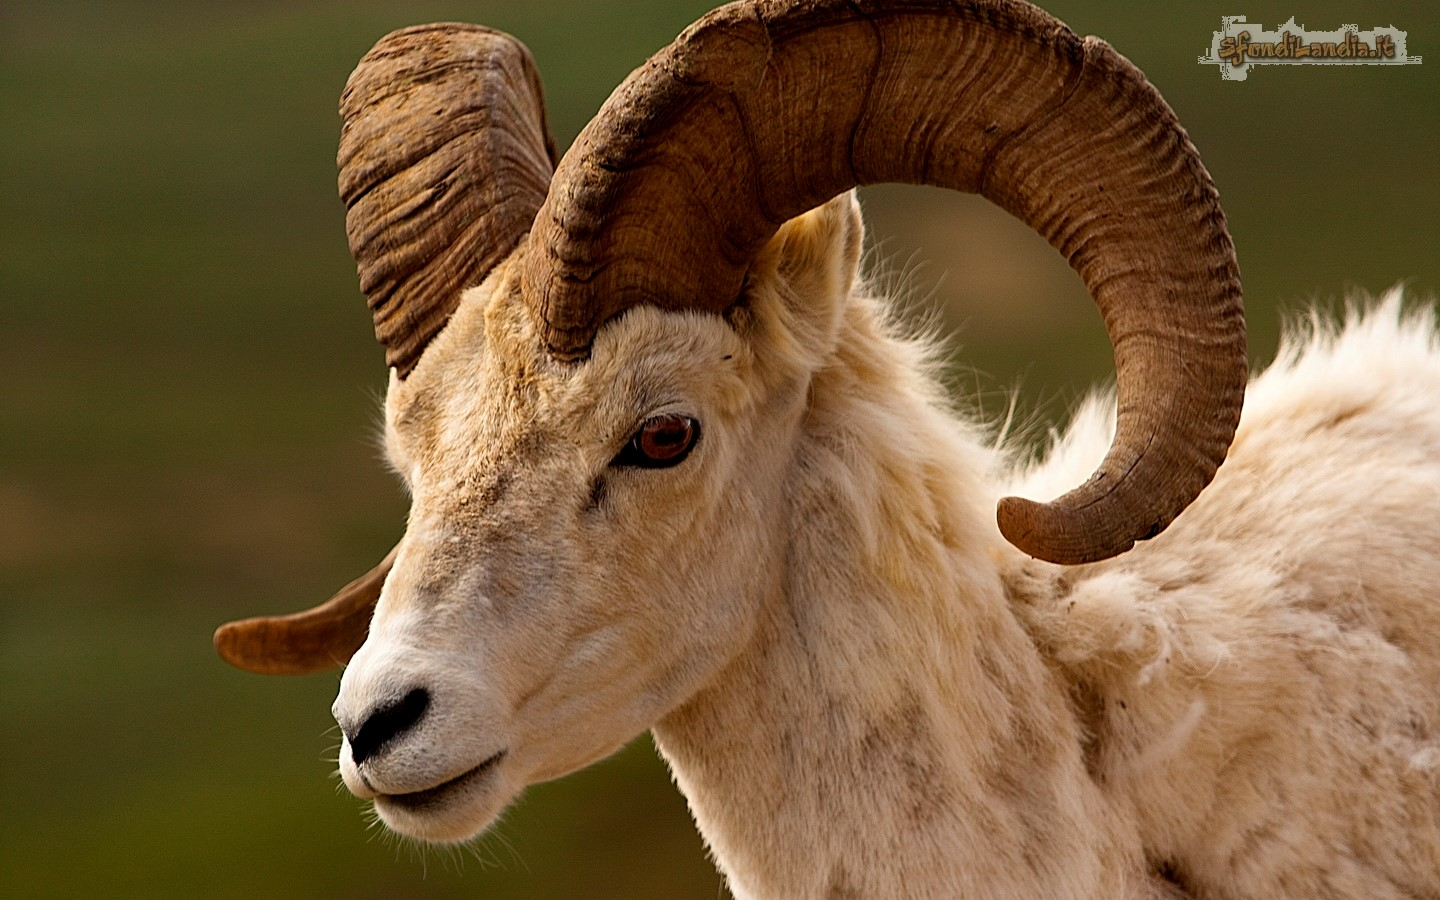 Aries And His Horns